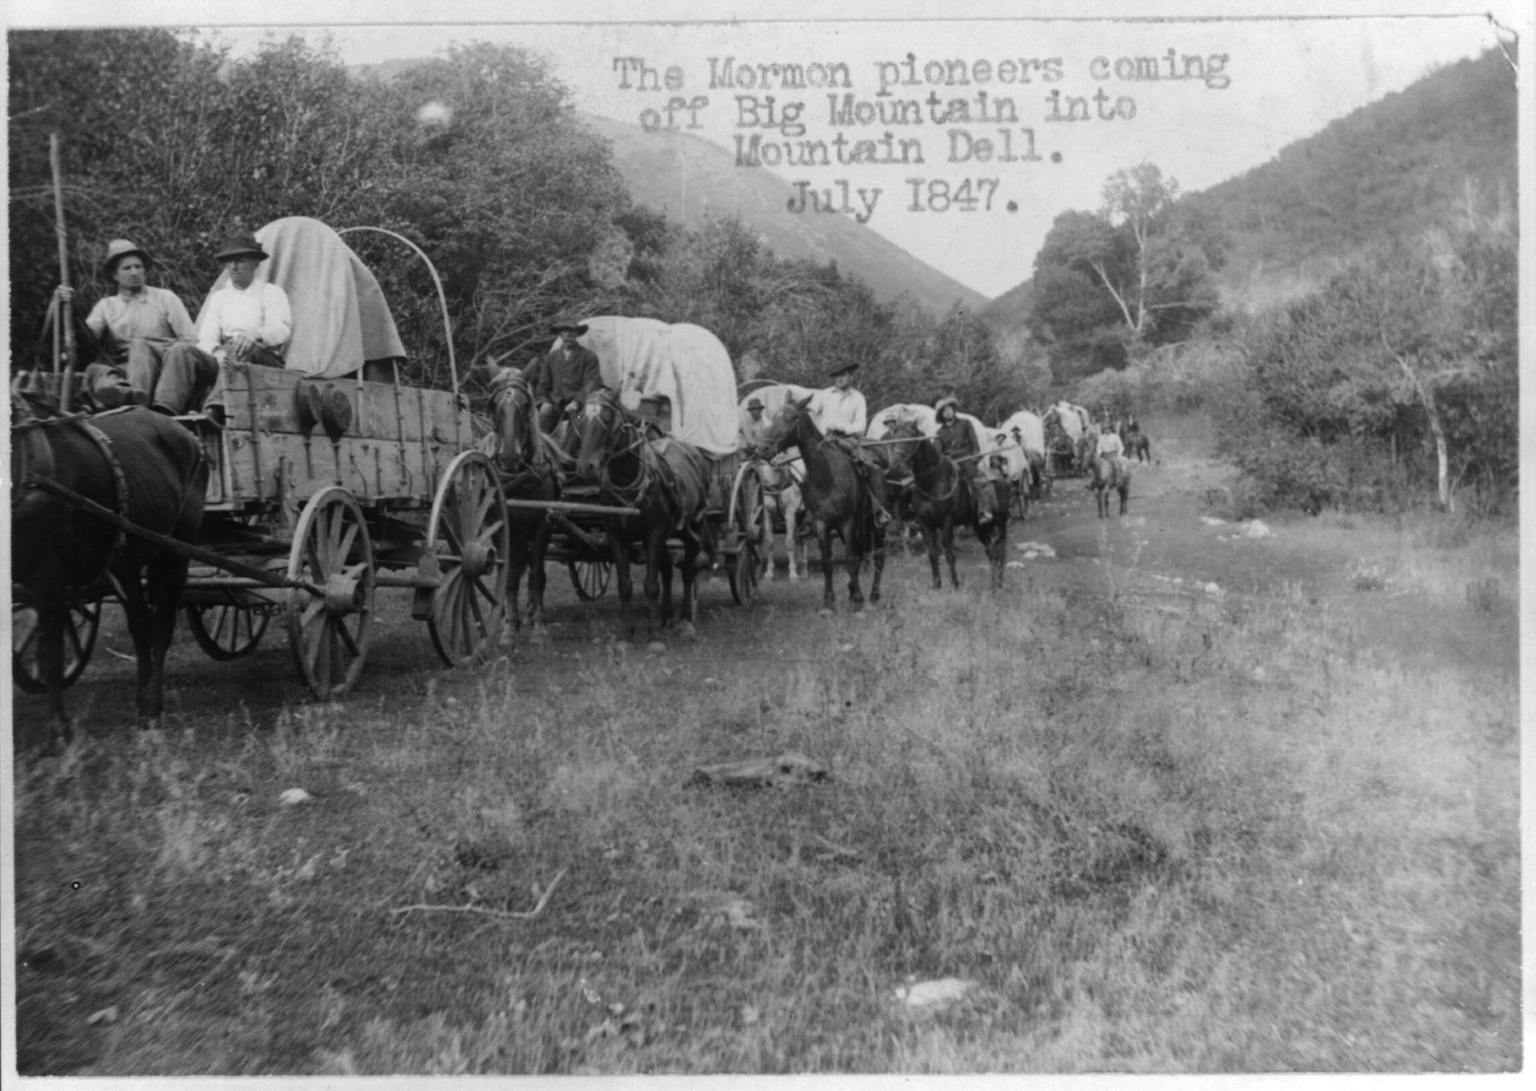 Trace Utah Genealogists have access to large Mormon pioneer databases for family history research